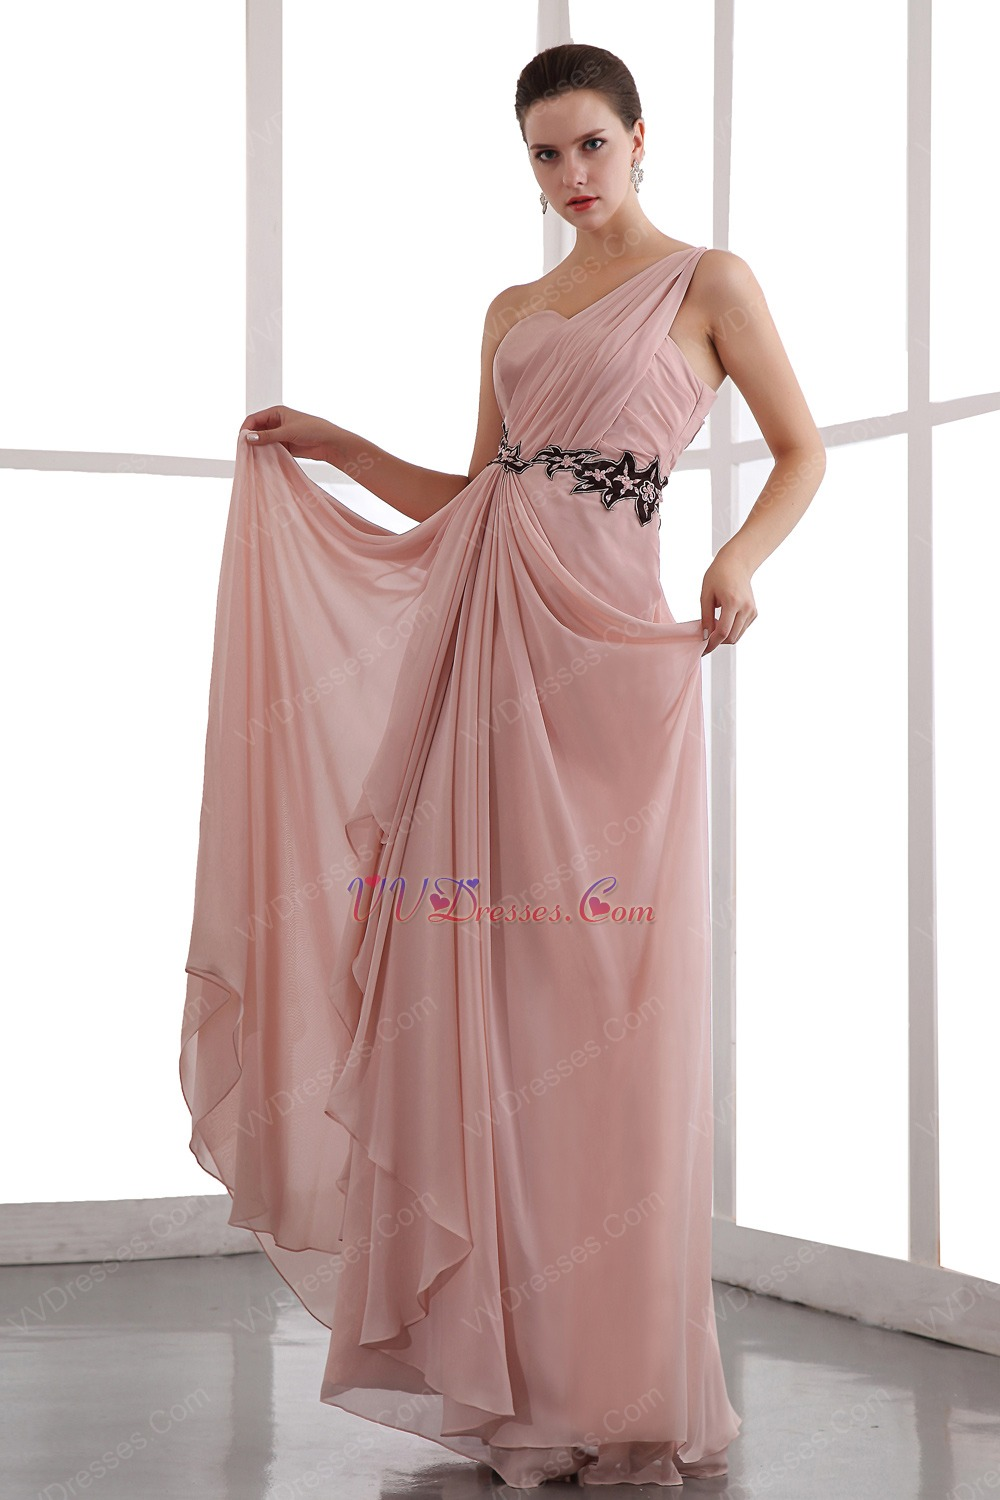 Expensive One Shoulder Light Coral Chiffon Prom Dress